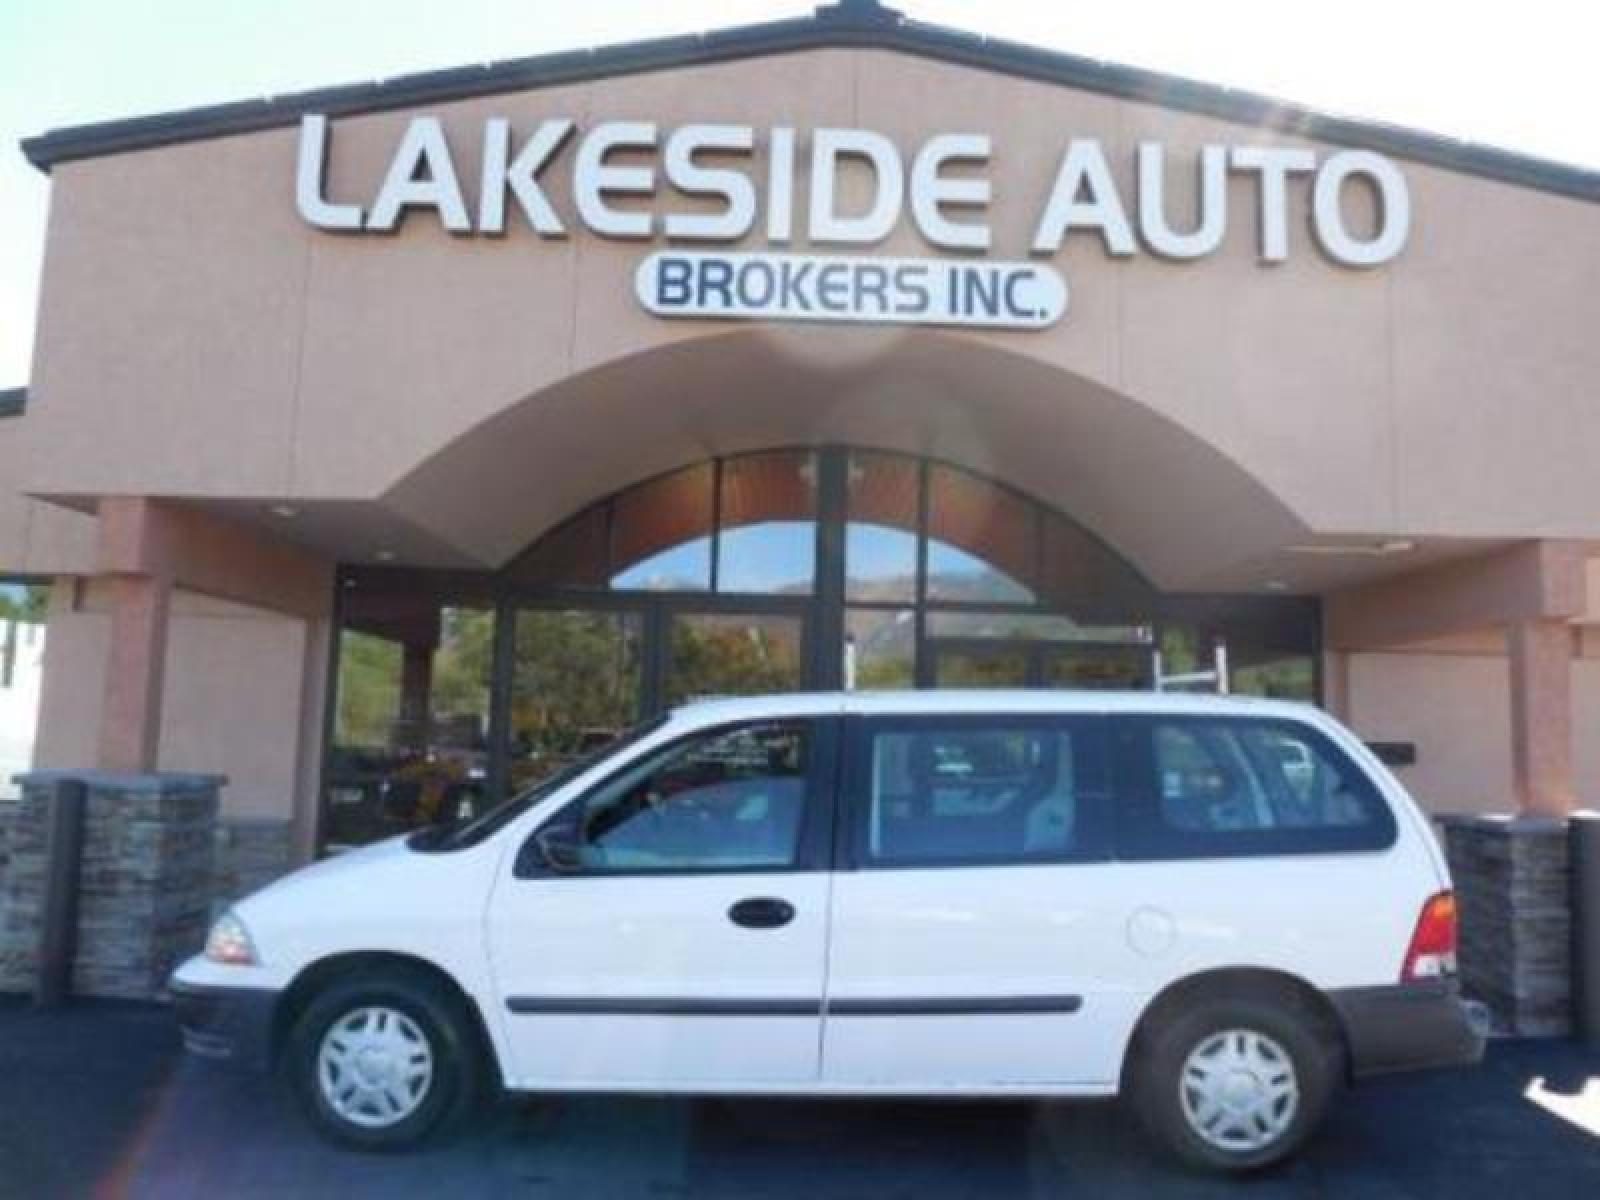 2000 Ford Windstar Cargo Information And Photos Zombiedrive Lx 800 1024 1280 1600 Origin